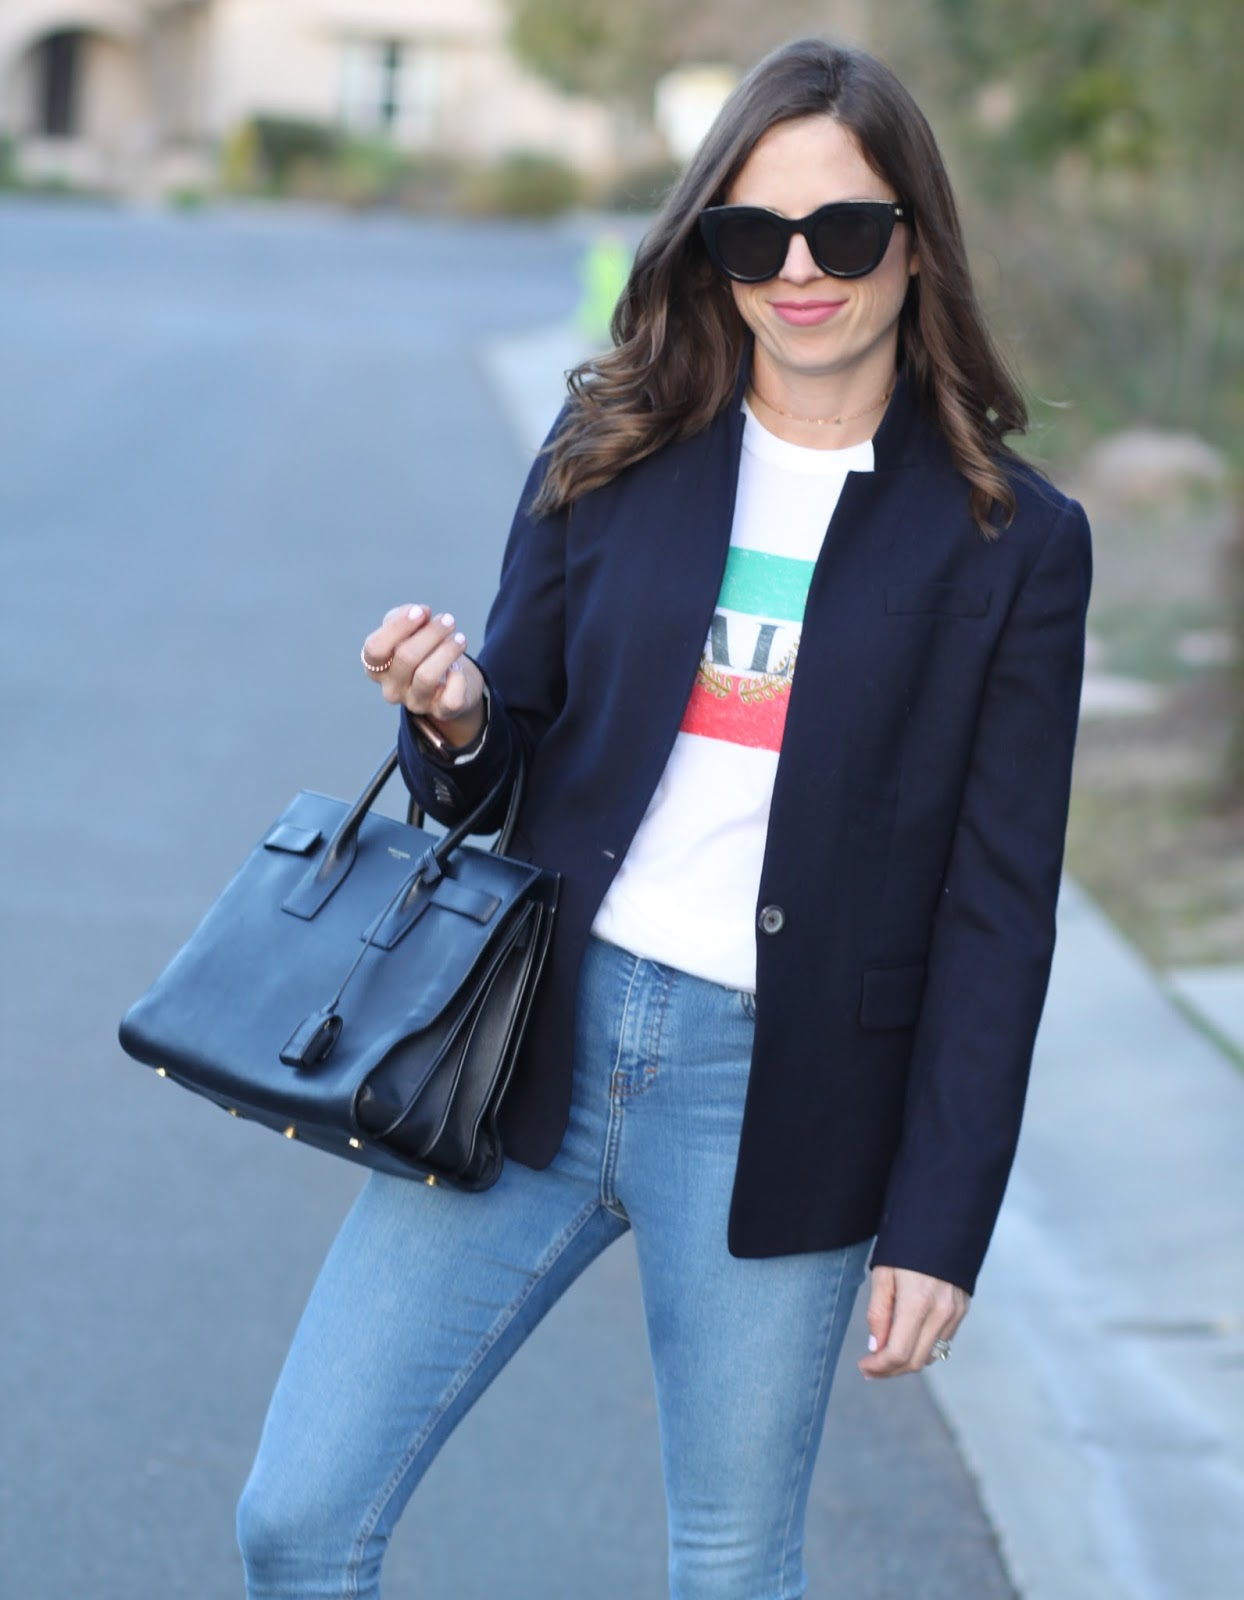 graphic tee and blazer outfit